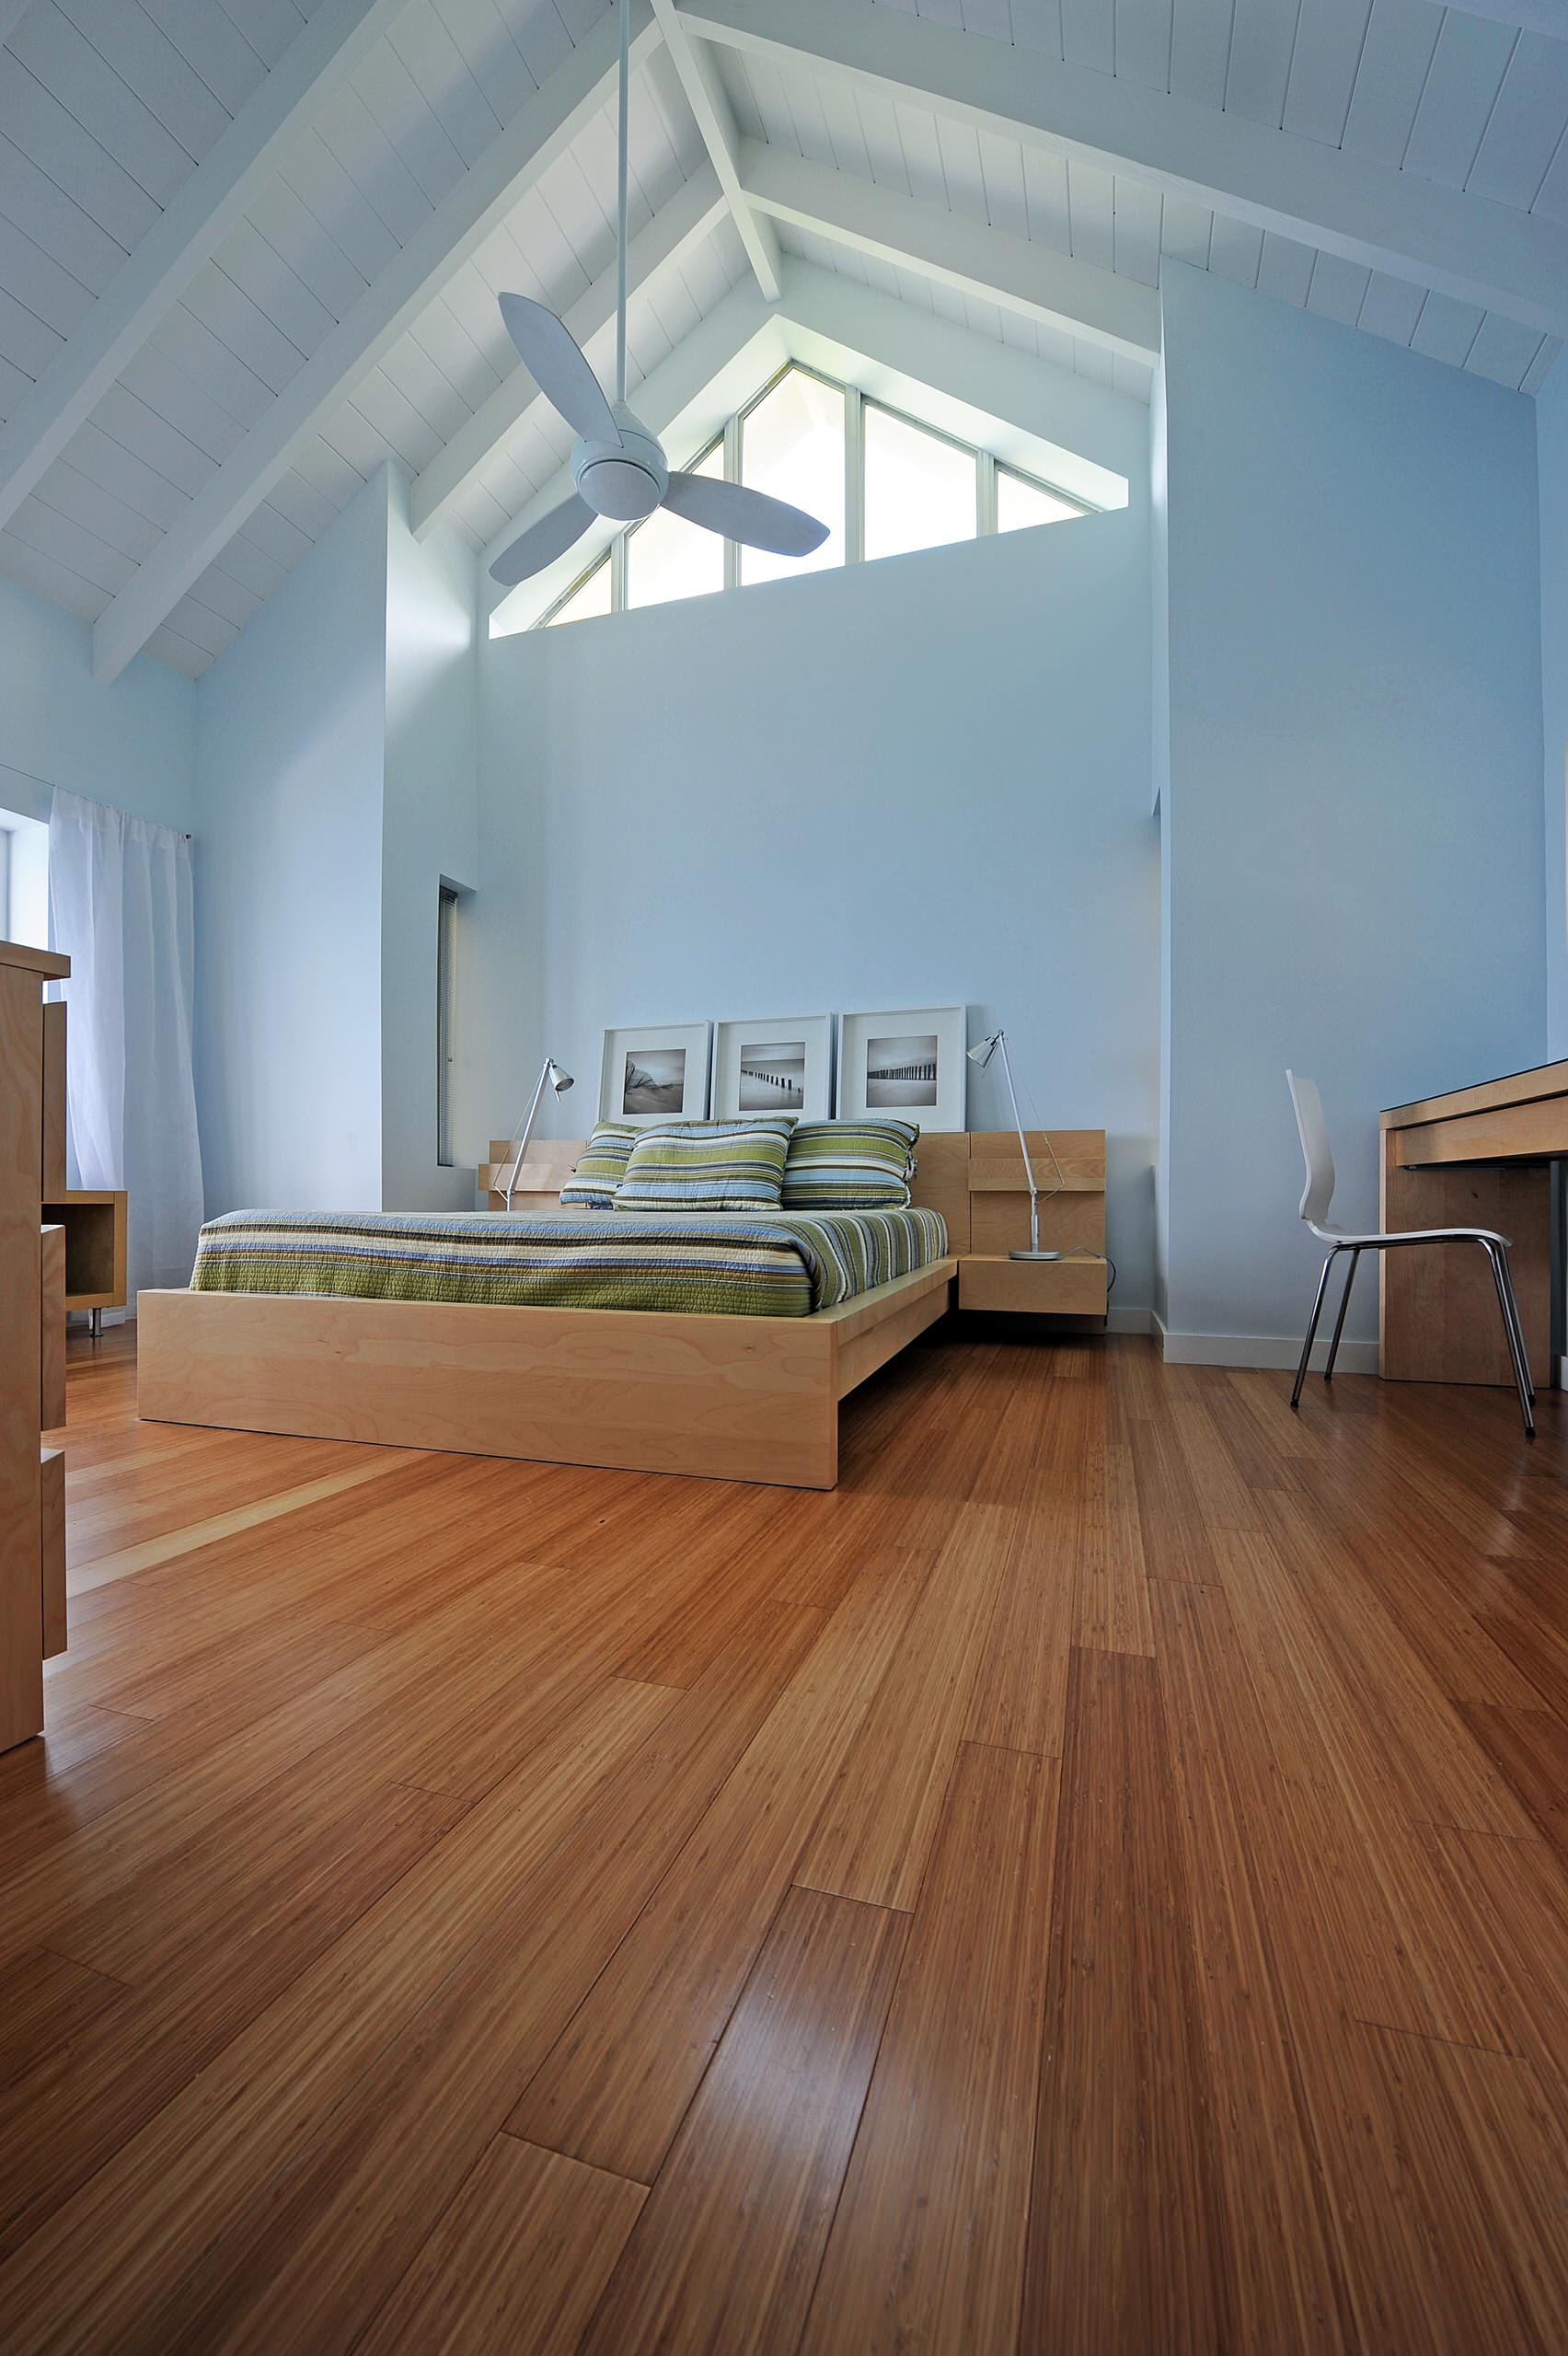 3 Beautiful Turquoise Bamboo Floor Bedroom Pictures & Ideas